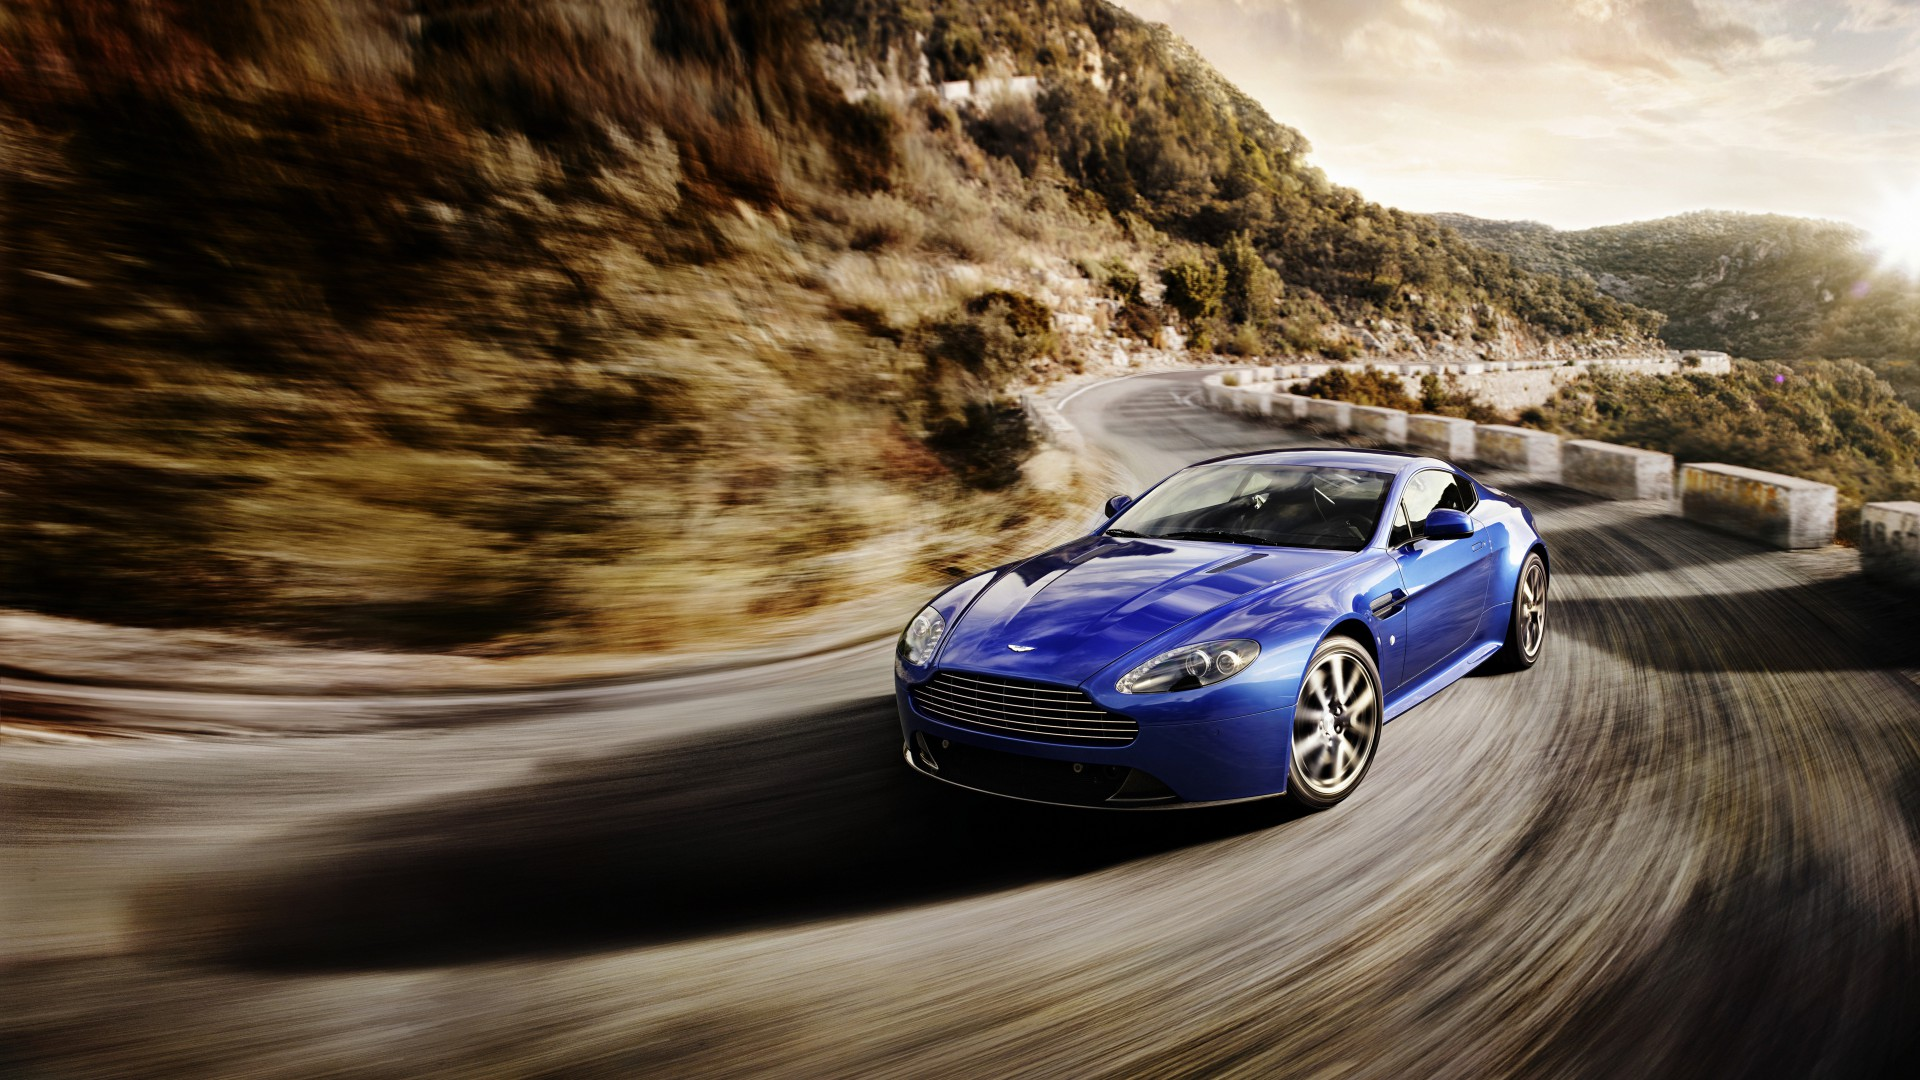 Aston Martin Vantage, sports car, V12, v8, Zagato, silver, review, test drive, speed (horizontal)